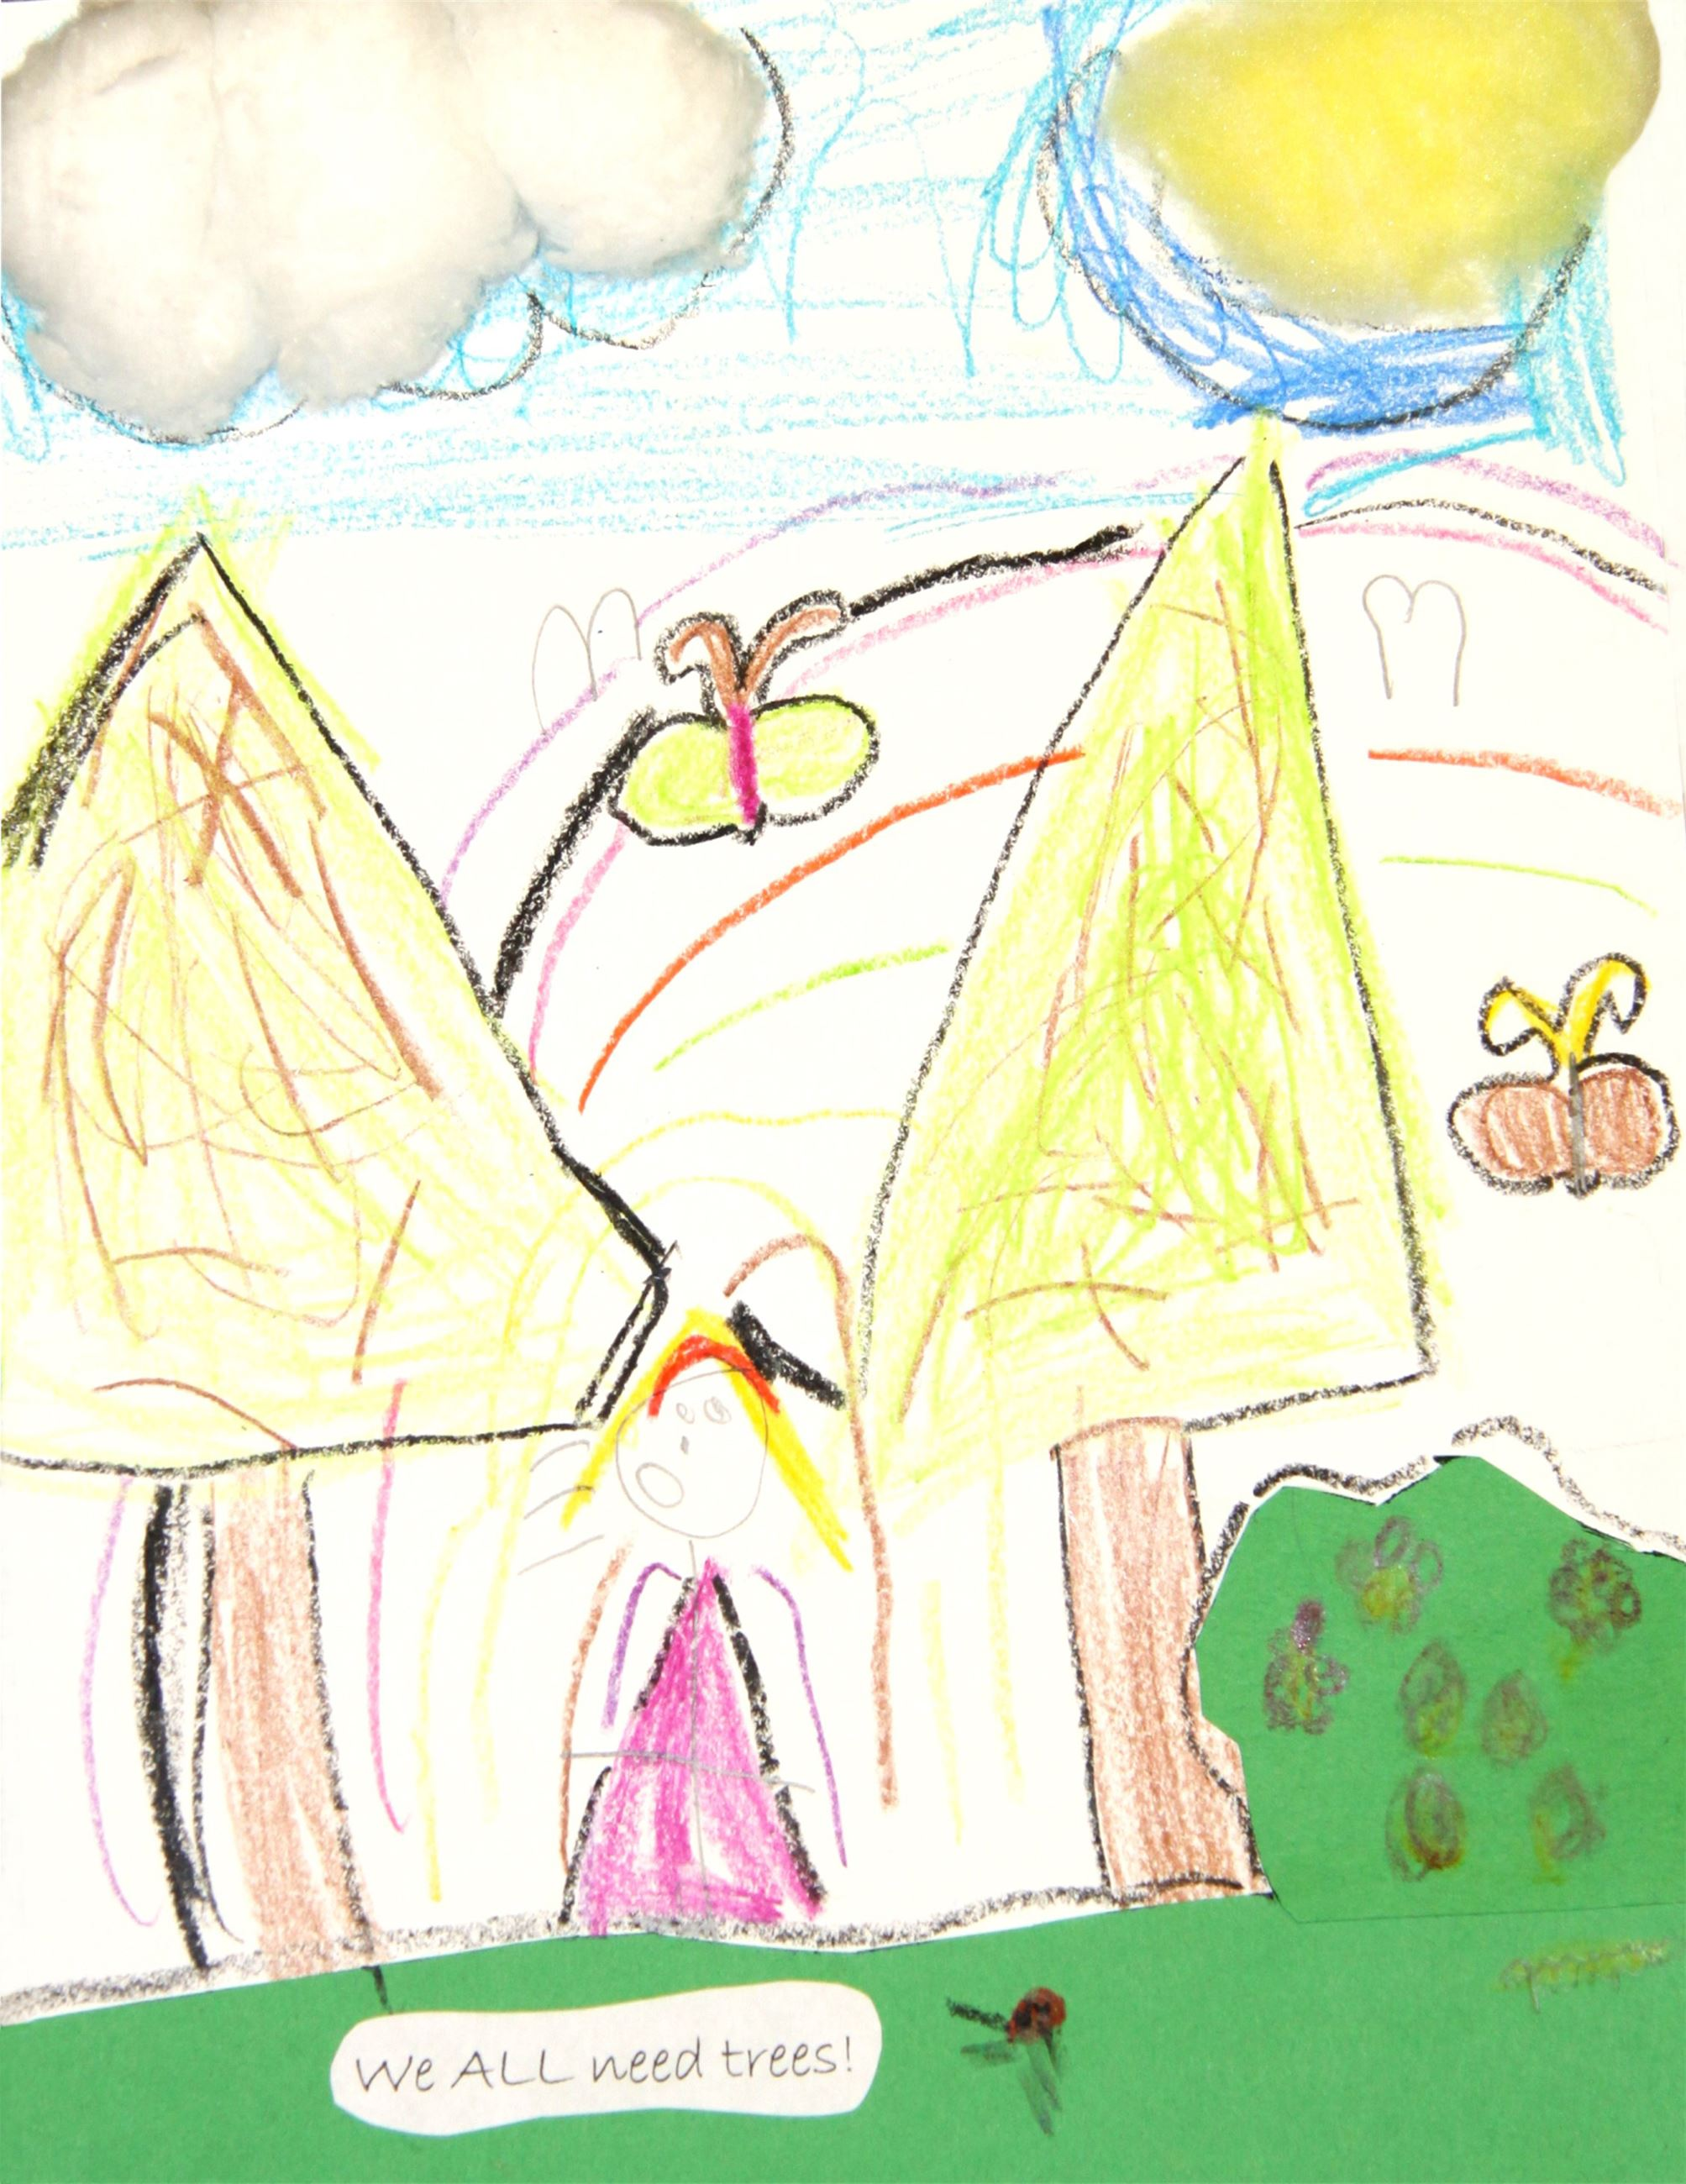 Grade K to 1, Third Place Winner: Lileigh Madden